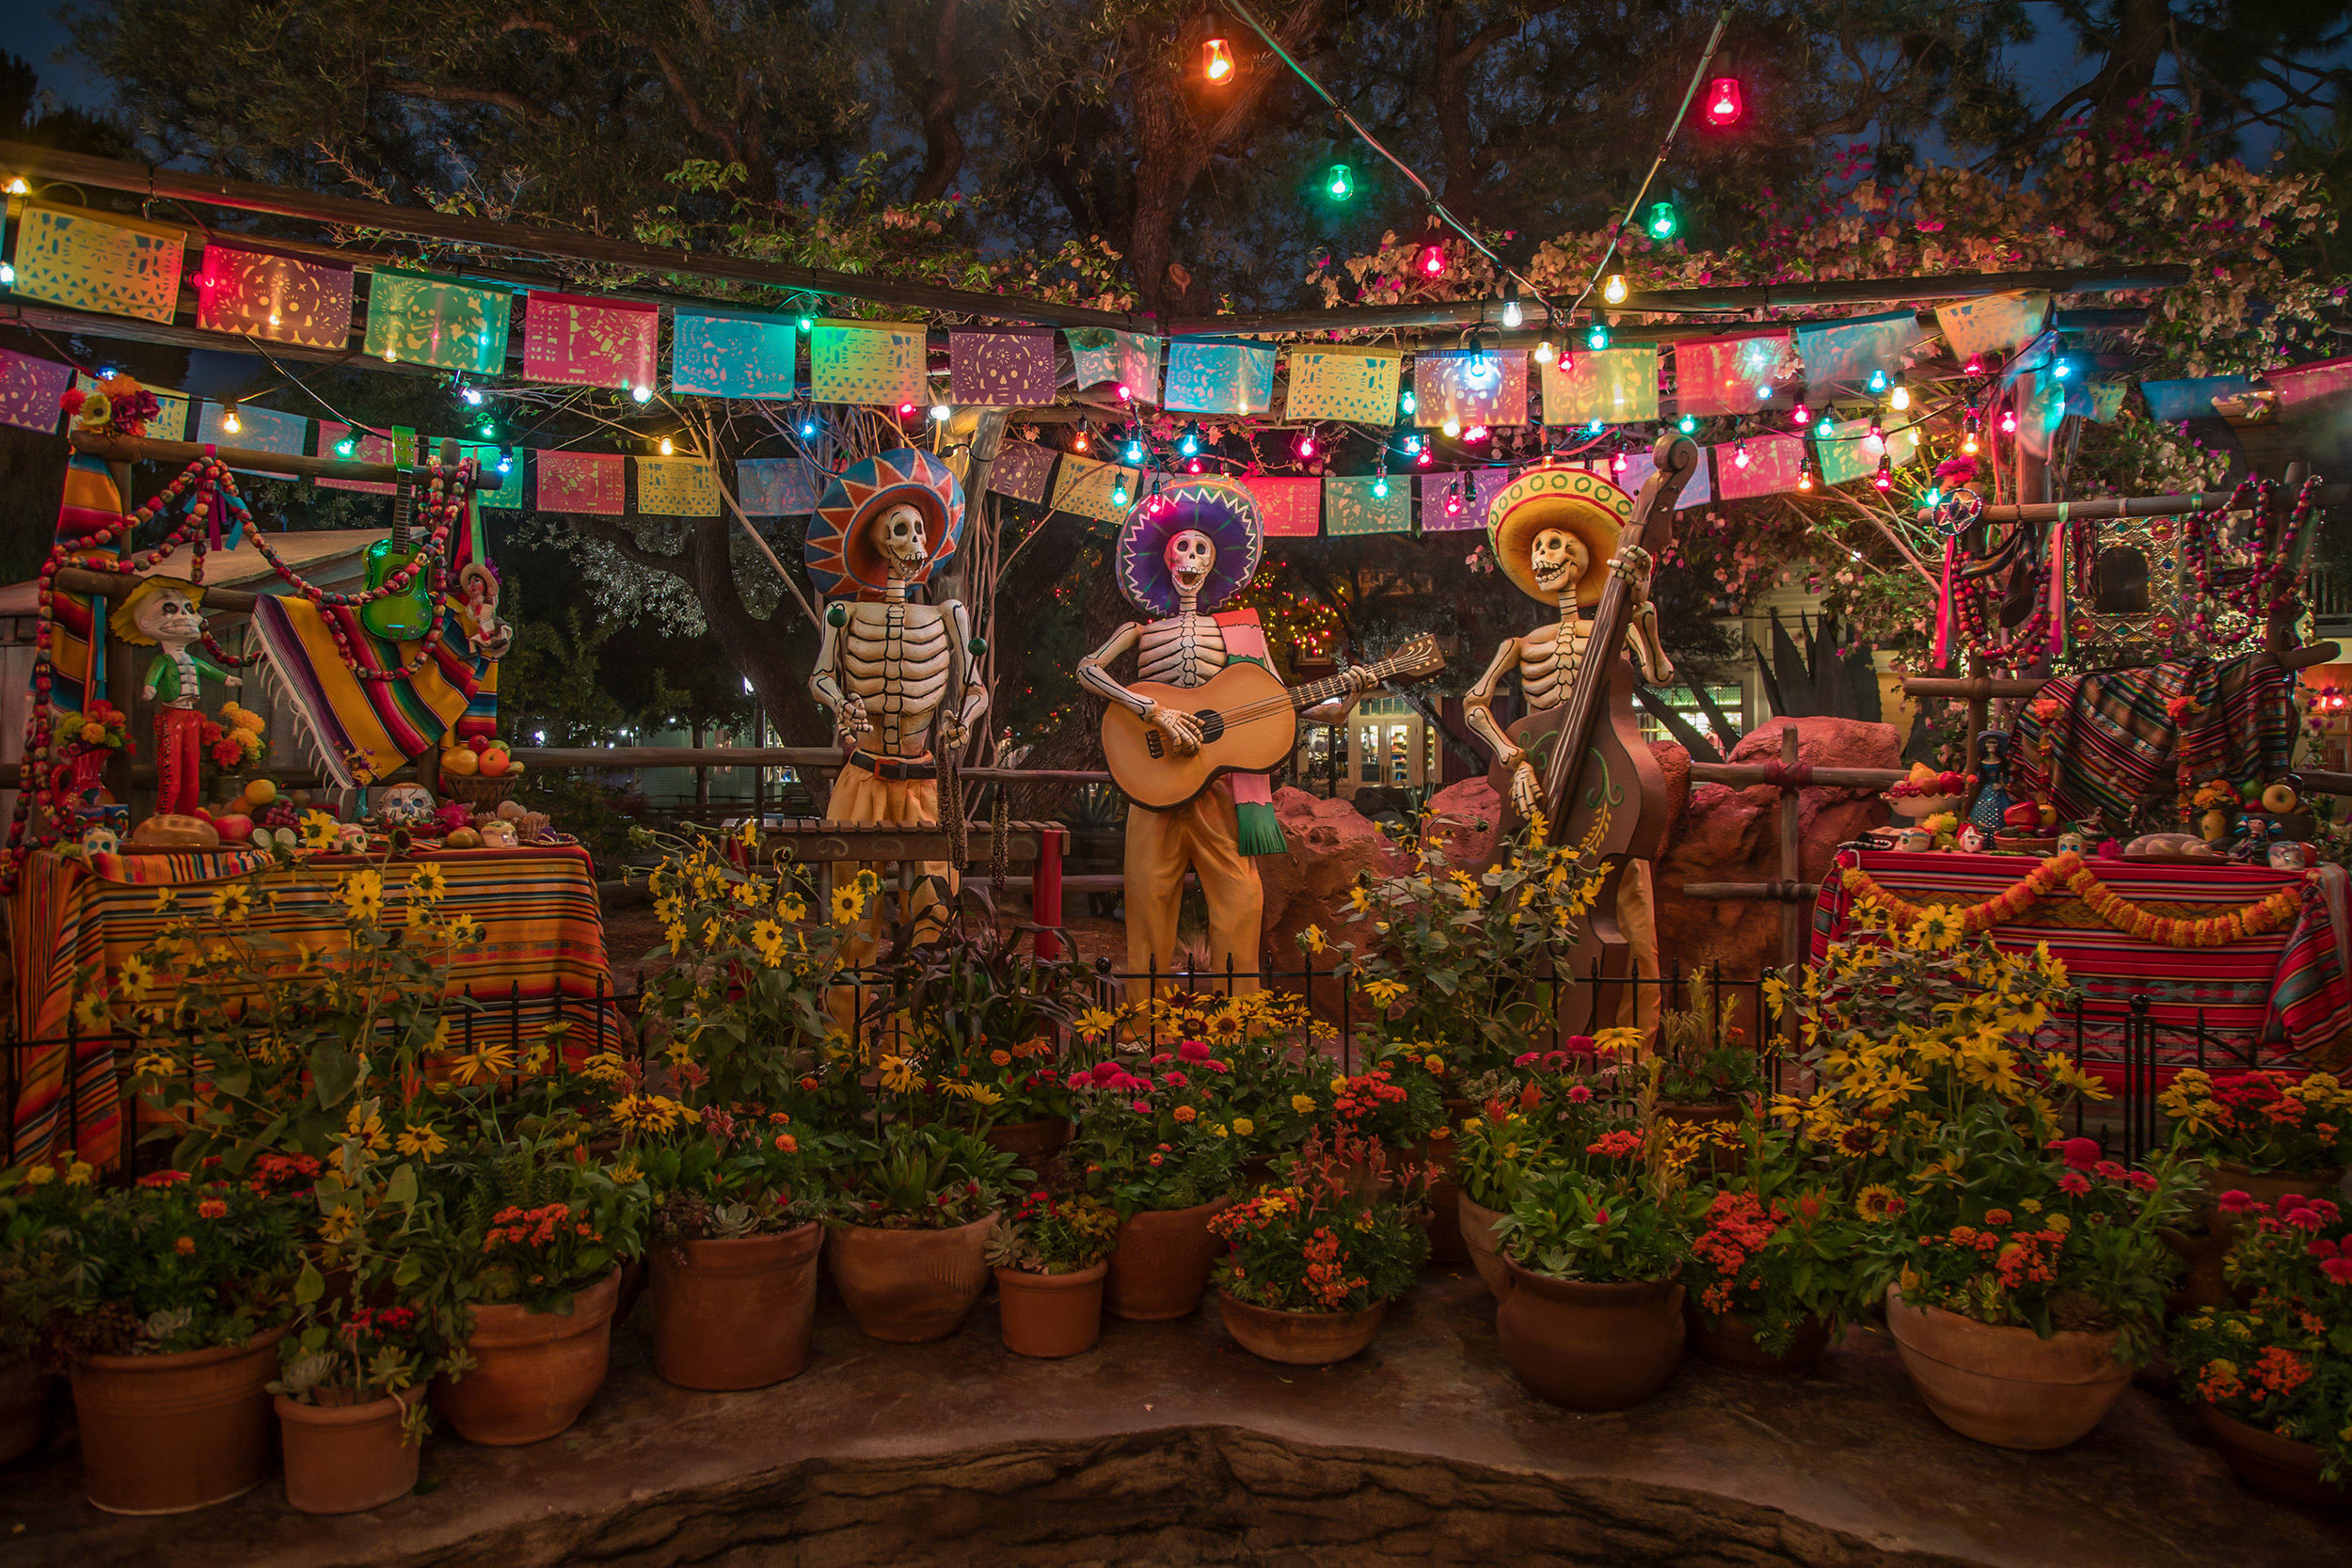 Guests visiting Disneyland park between Sept. 6-Oct. 31, 2019, can commemorate Day of the Dead by visiting the colorful Día de los Muertos tribute in Frontierland – an exhibit that features a musical trio of iconic skeleton figurines, brightly colored flowers and other decorative items. Disneyland Resort is located in Anaheim, Calif. (Joshua Sudock/Disneyland Resort)